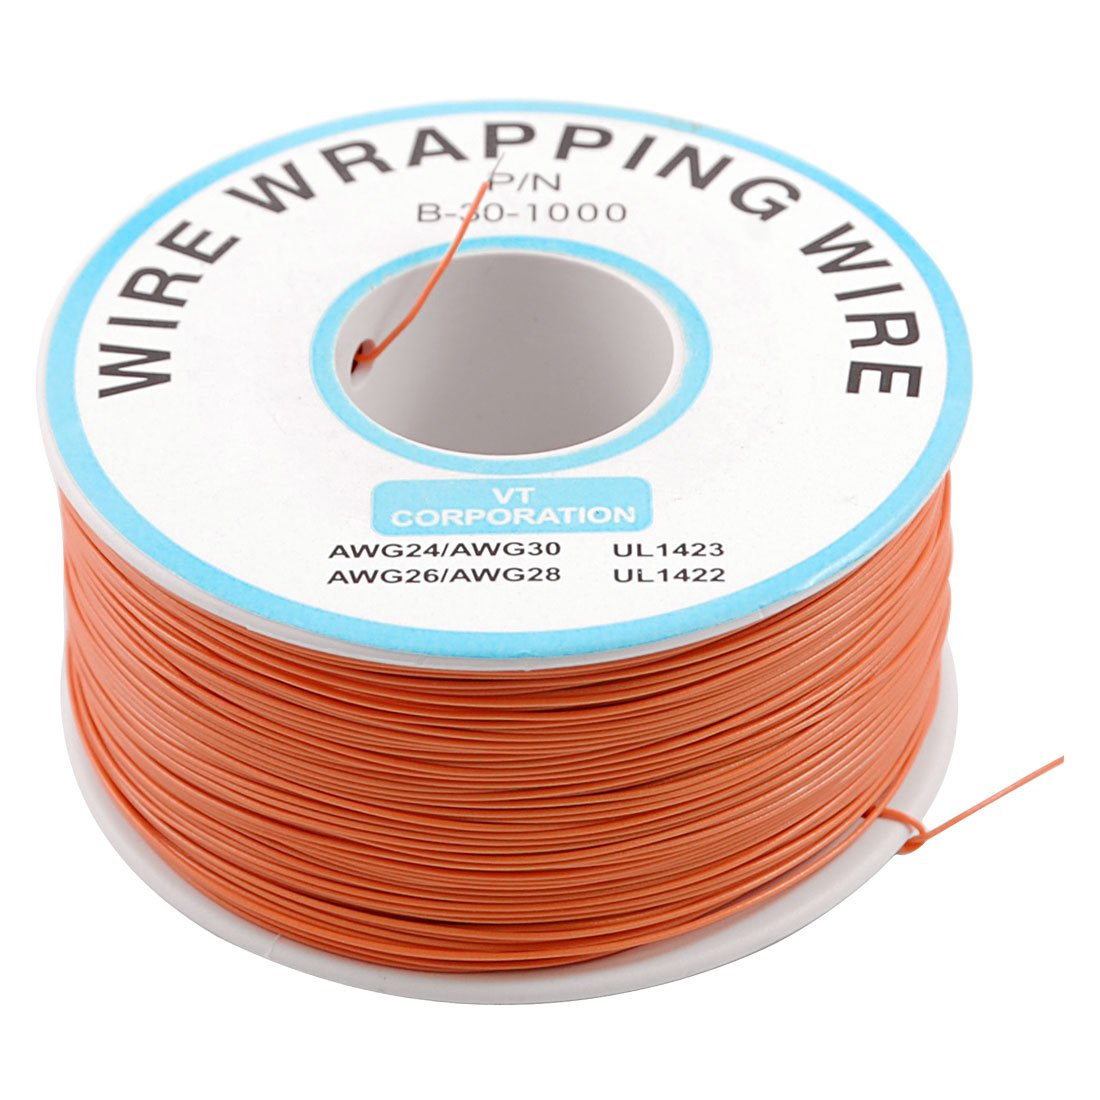 MYLB PCB Solder Orange Flexible 0.5mm Outside Dia 30AWG Wire Wrapping Wrap 1000Ft white flexible 30awg wire cable high temperature resistant wrapping wrap 315m